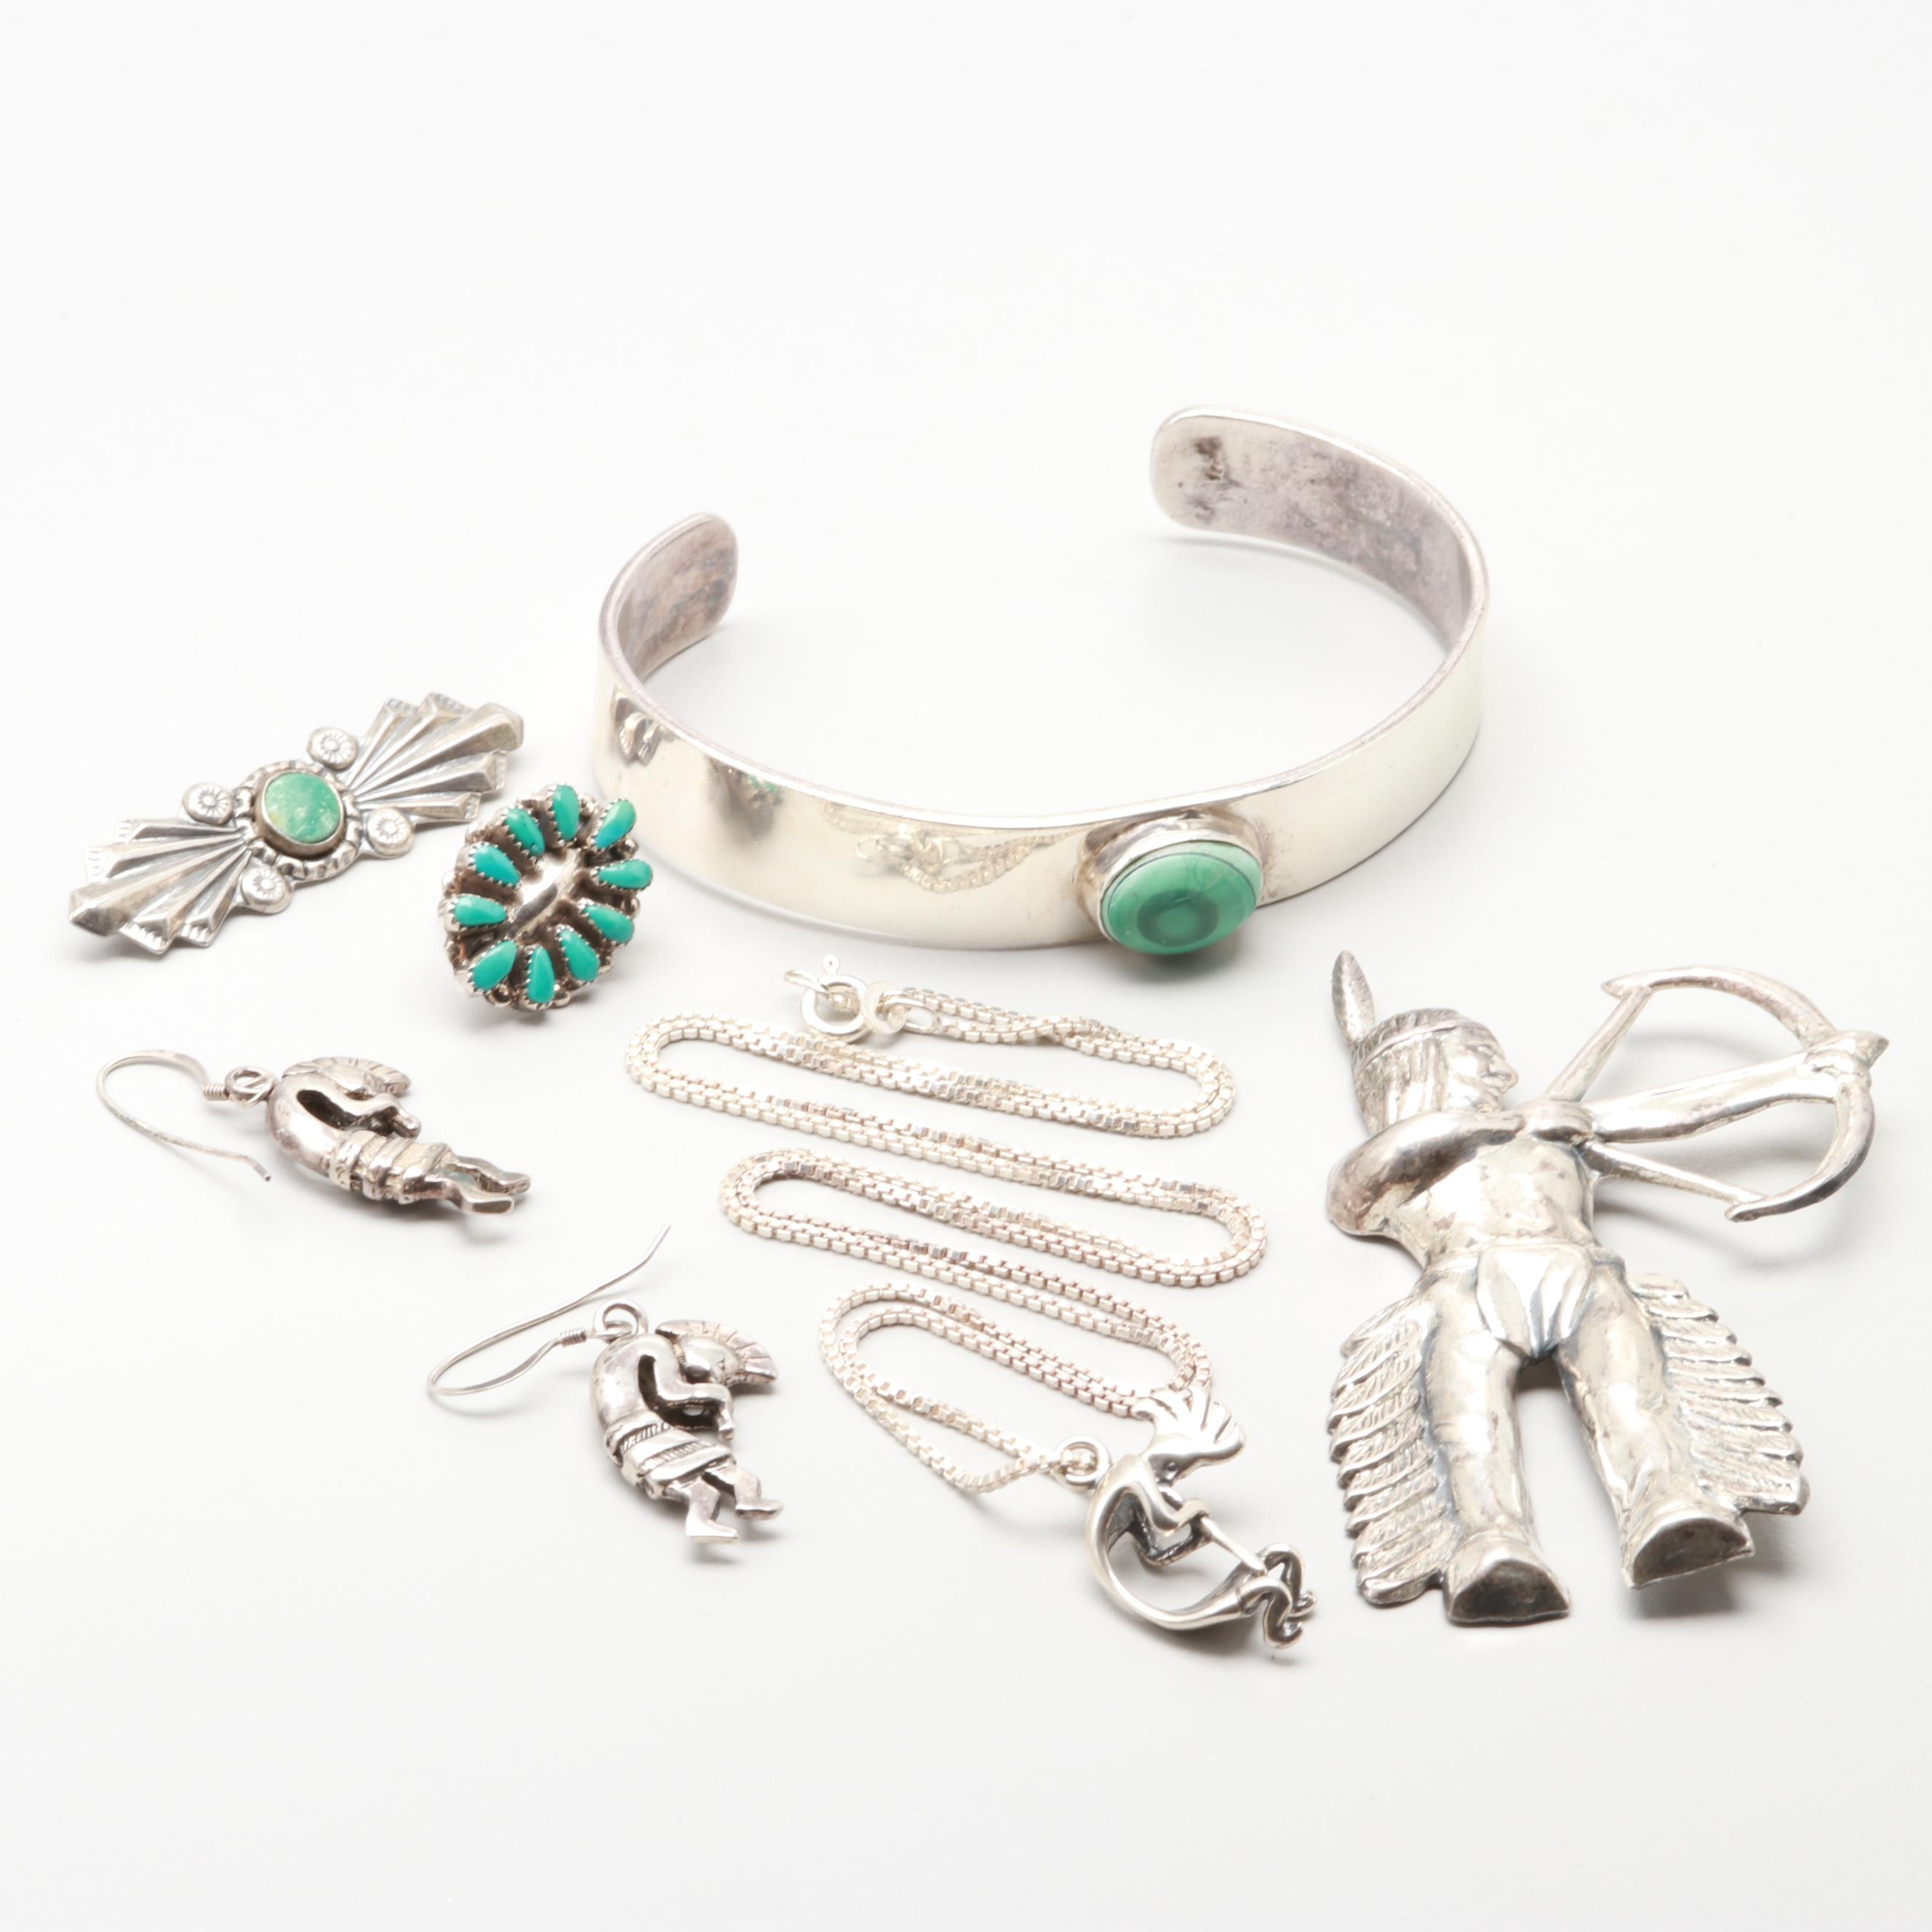 Sterling Silver Jewelry Assortment Including Glass and Turquoise